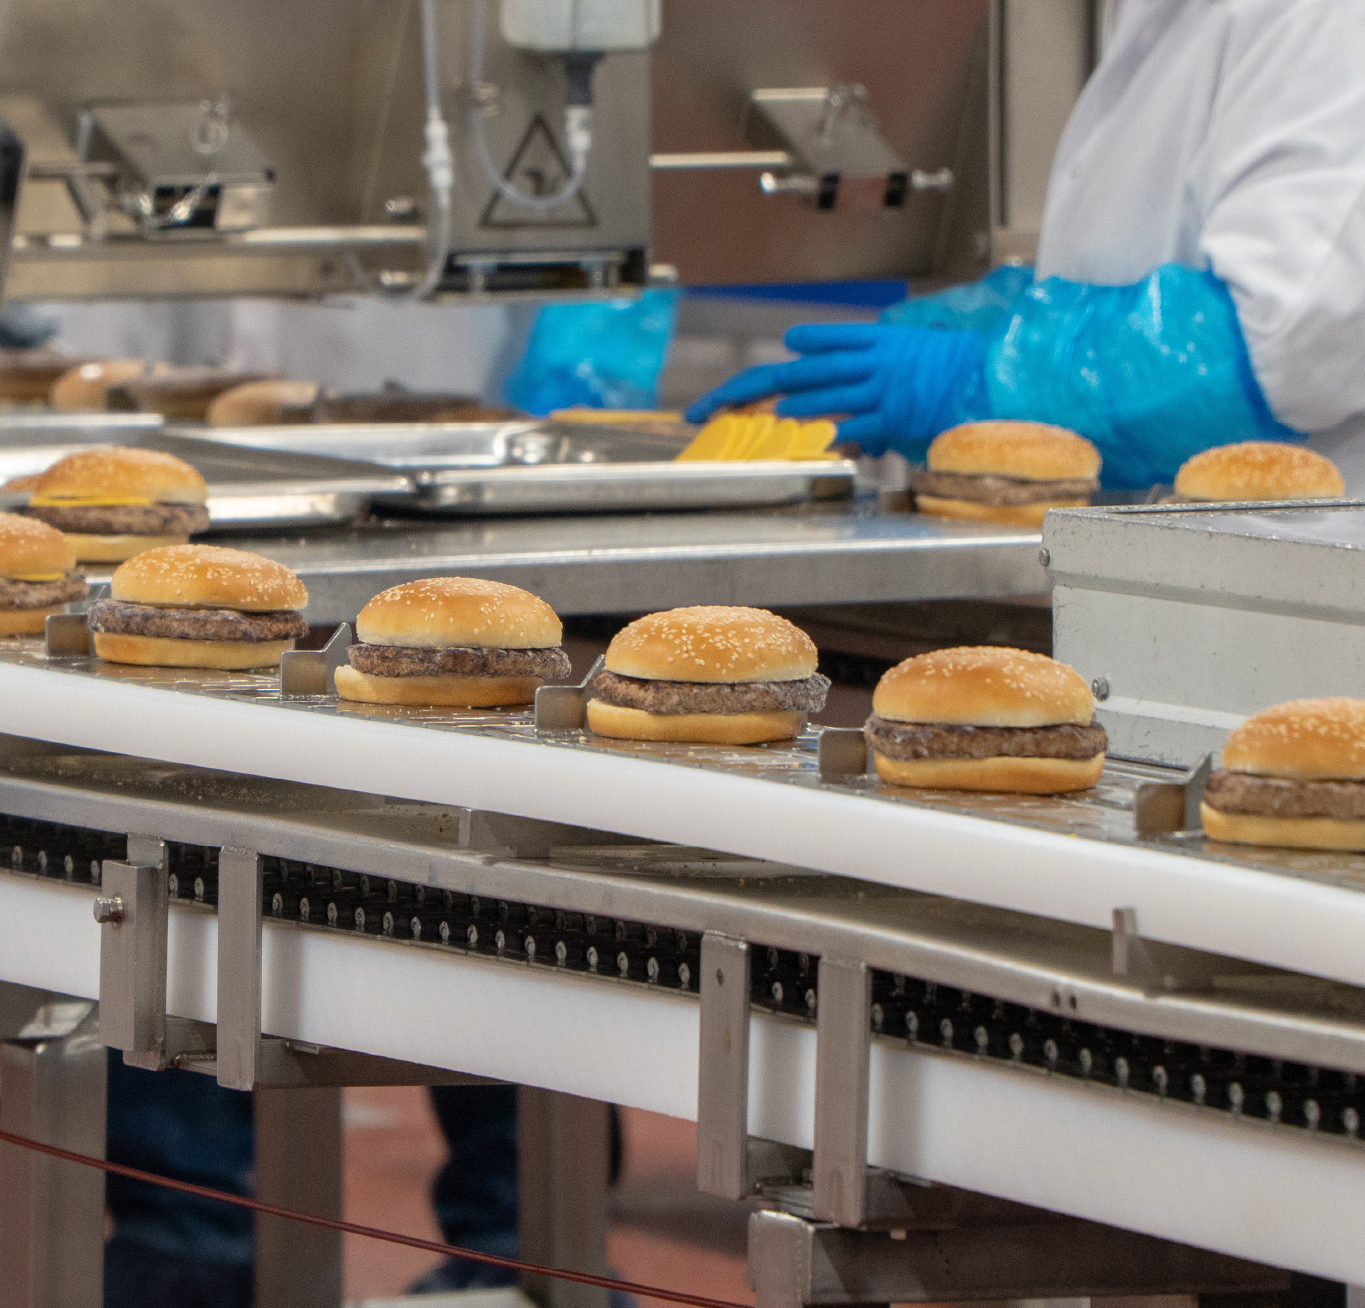 Sandwiches on production line